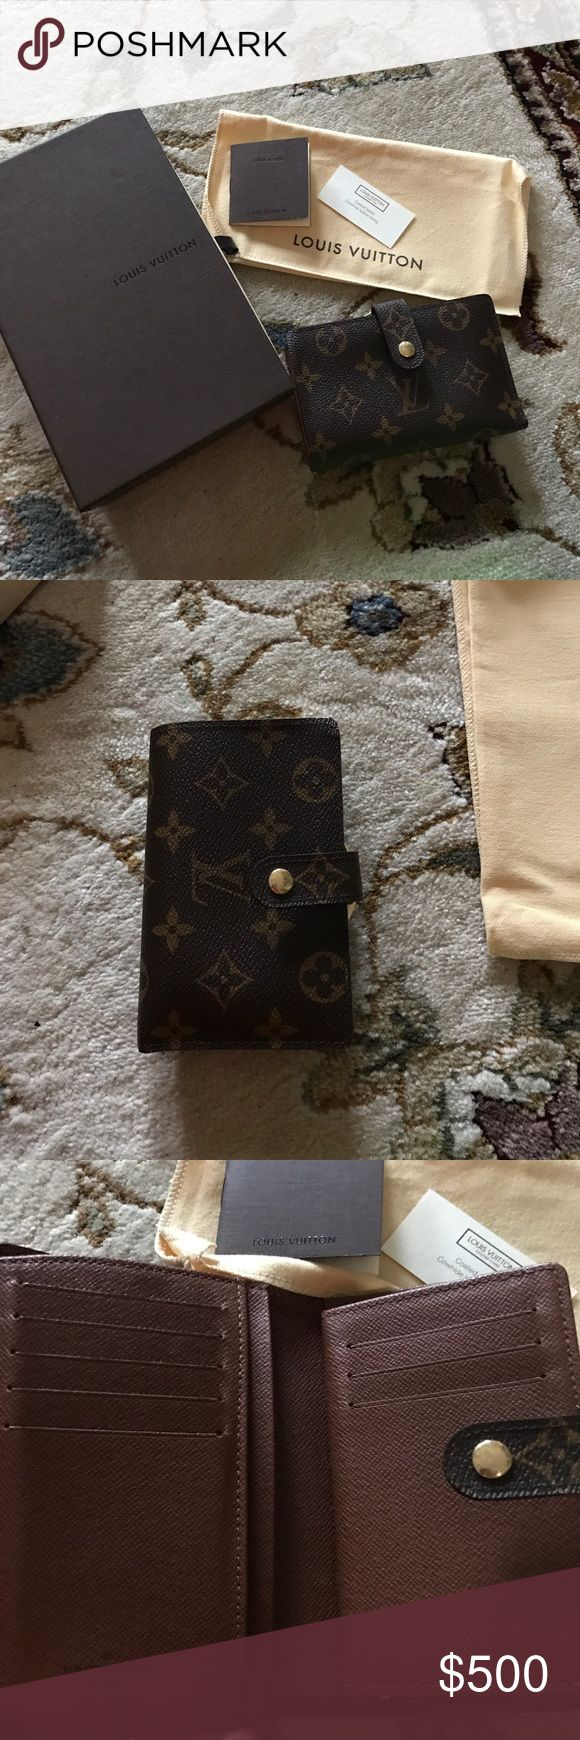 Authentic real Louis Vuitton wallet Real Louis Vuitton wallet. Used once. Too small. No scratches or sis locations. Mint perfect condition. Garmet bag and box. Authentic card. Comes with what u see in pictures. Bought in Las Vegas @ bellagio Louis Vuitton Louis Vuitton Accessories